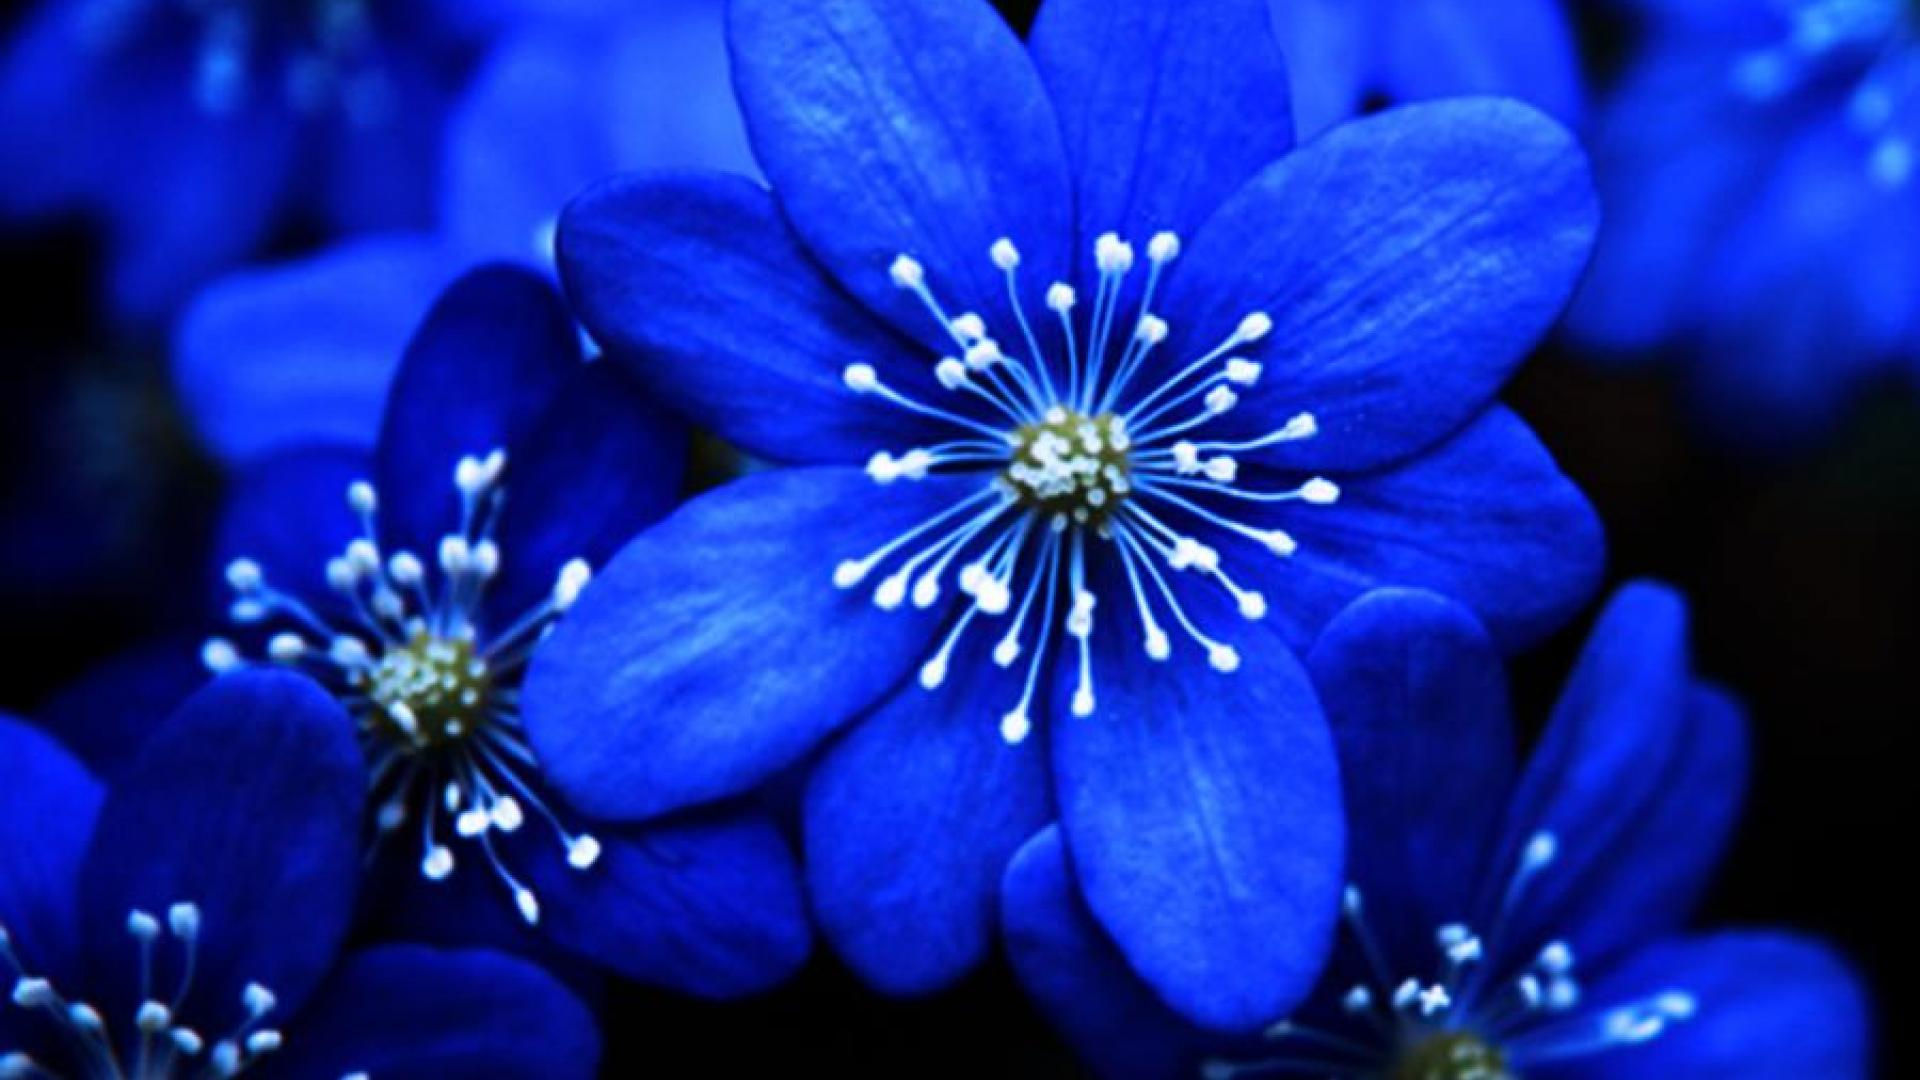 Blue Flower Widescreen High Definition Wallpaper